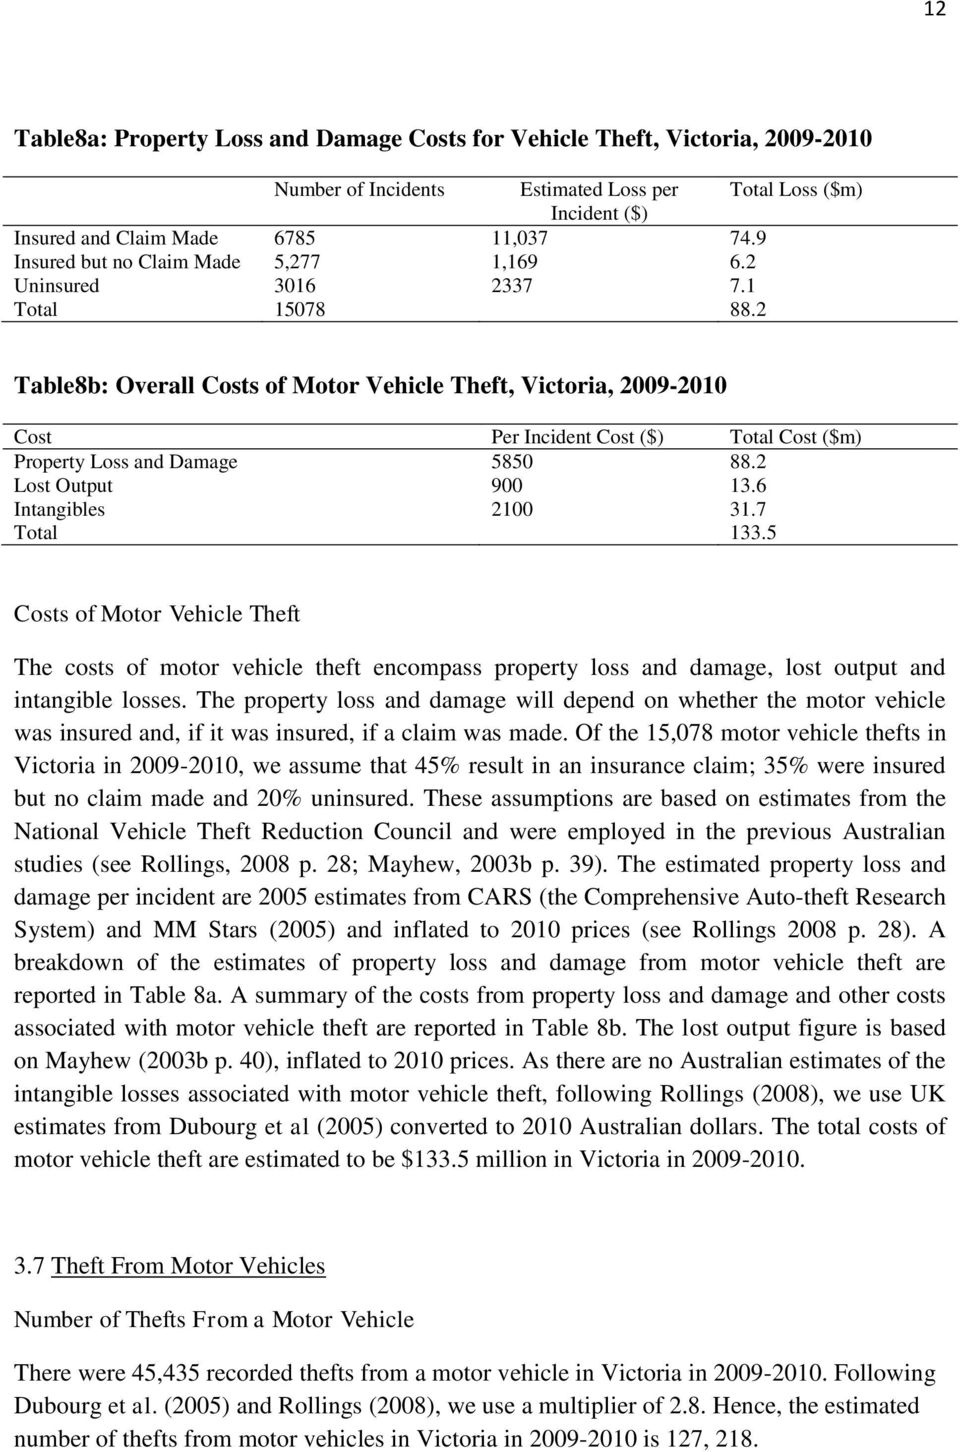 2 Table8b: Overall Costs of Motor Vehicle Theft, Victoria, 2009-2010 Cost Per Incident Cost ($) Total Cost ($m) Property Loss and Damage 5850 88.2 Lost Output 900 13.6 Intangibles 2100 31.7 Total 133.